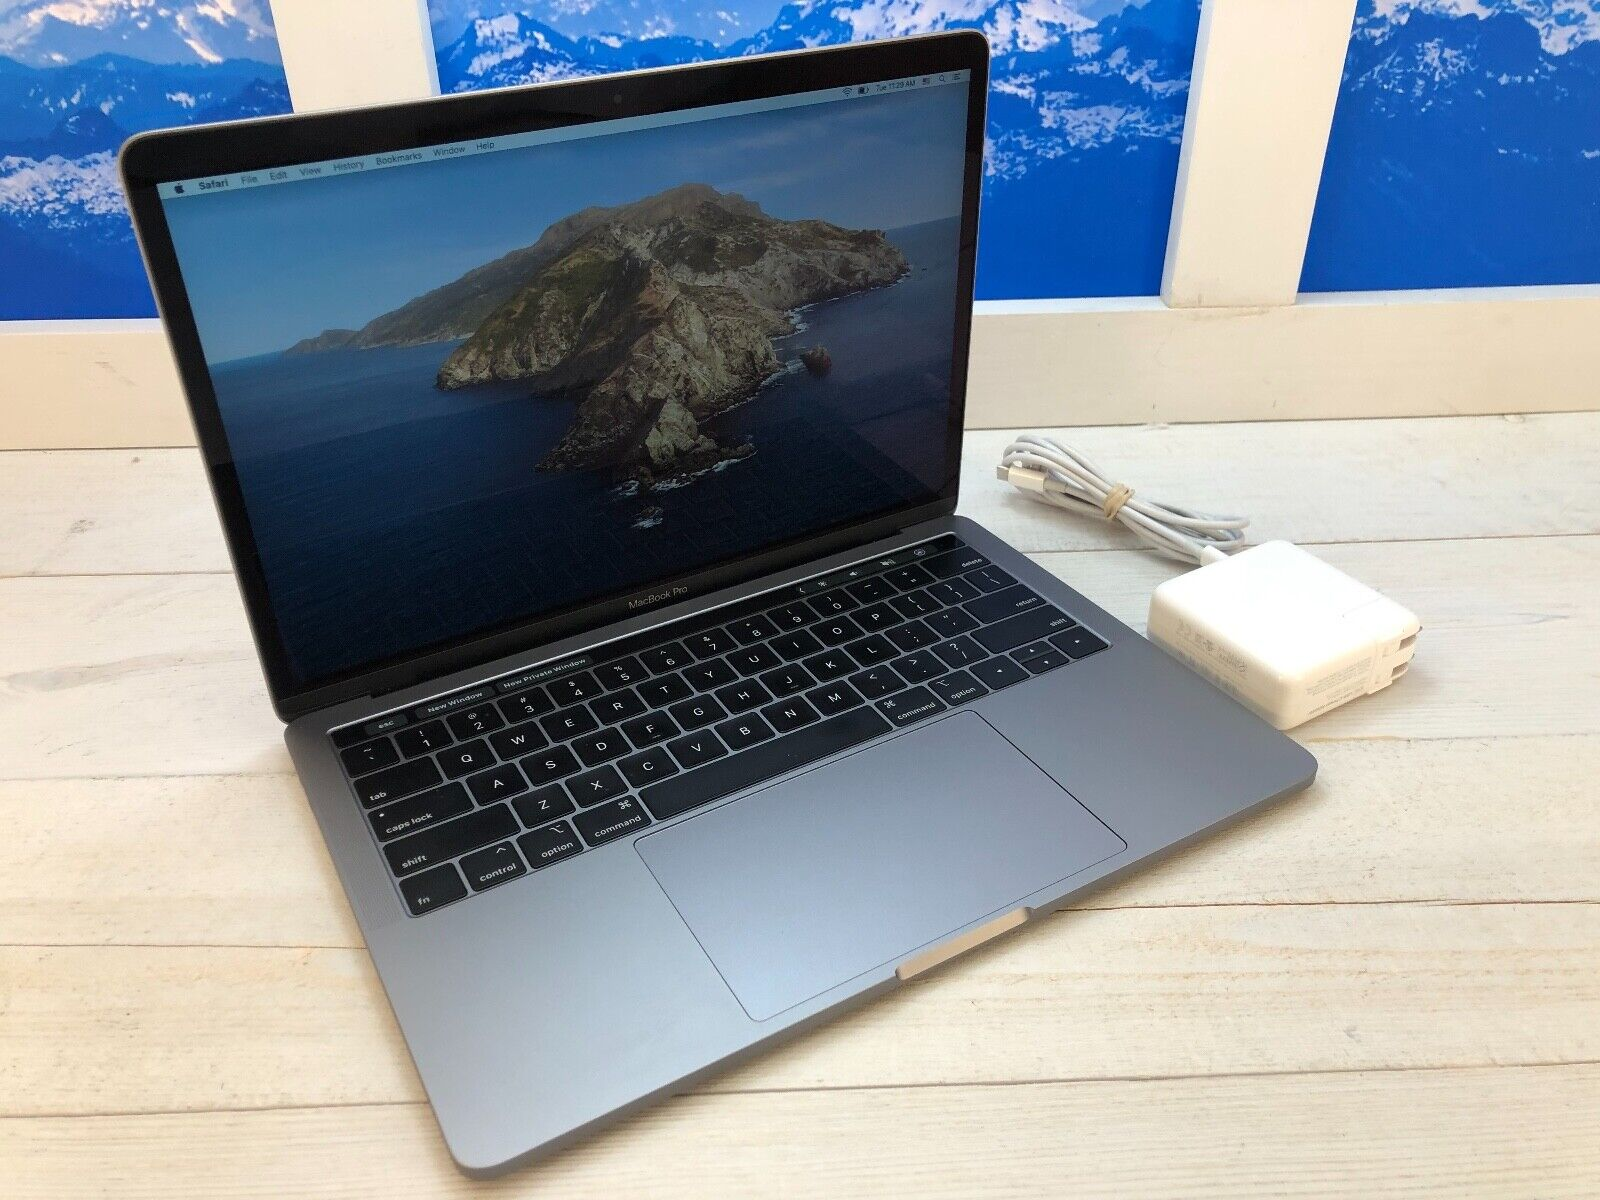 "Apple MacBook Pro Touch Bar 2019 13"" Laptop 128GB 8GB RAM Space Gray Warranty. Buy it now for 1039.00"